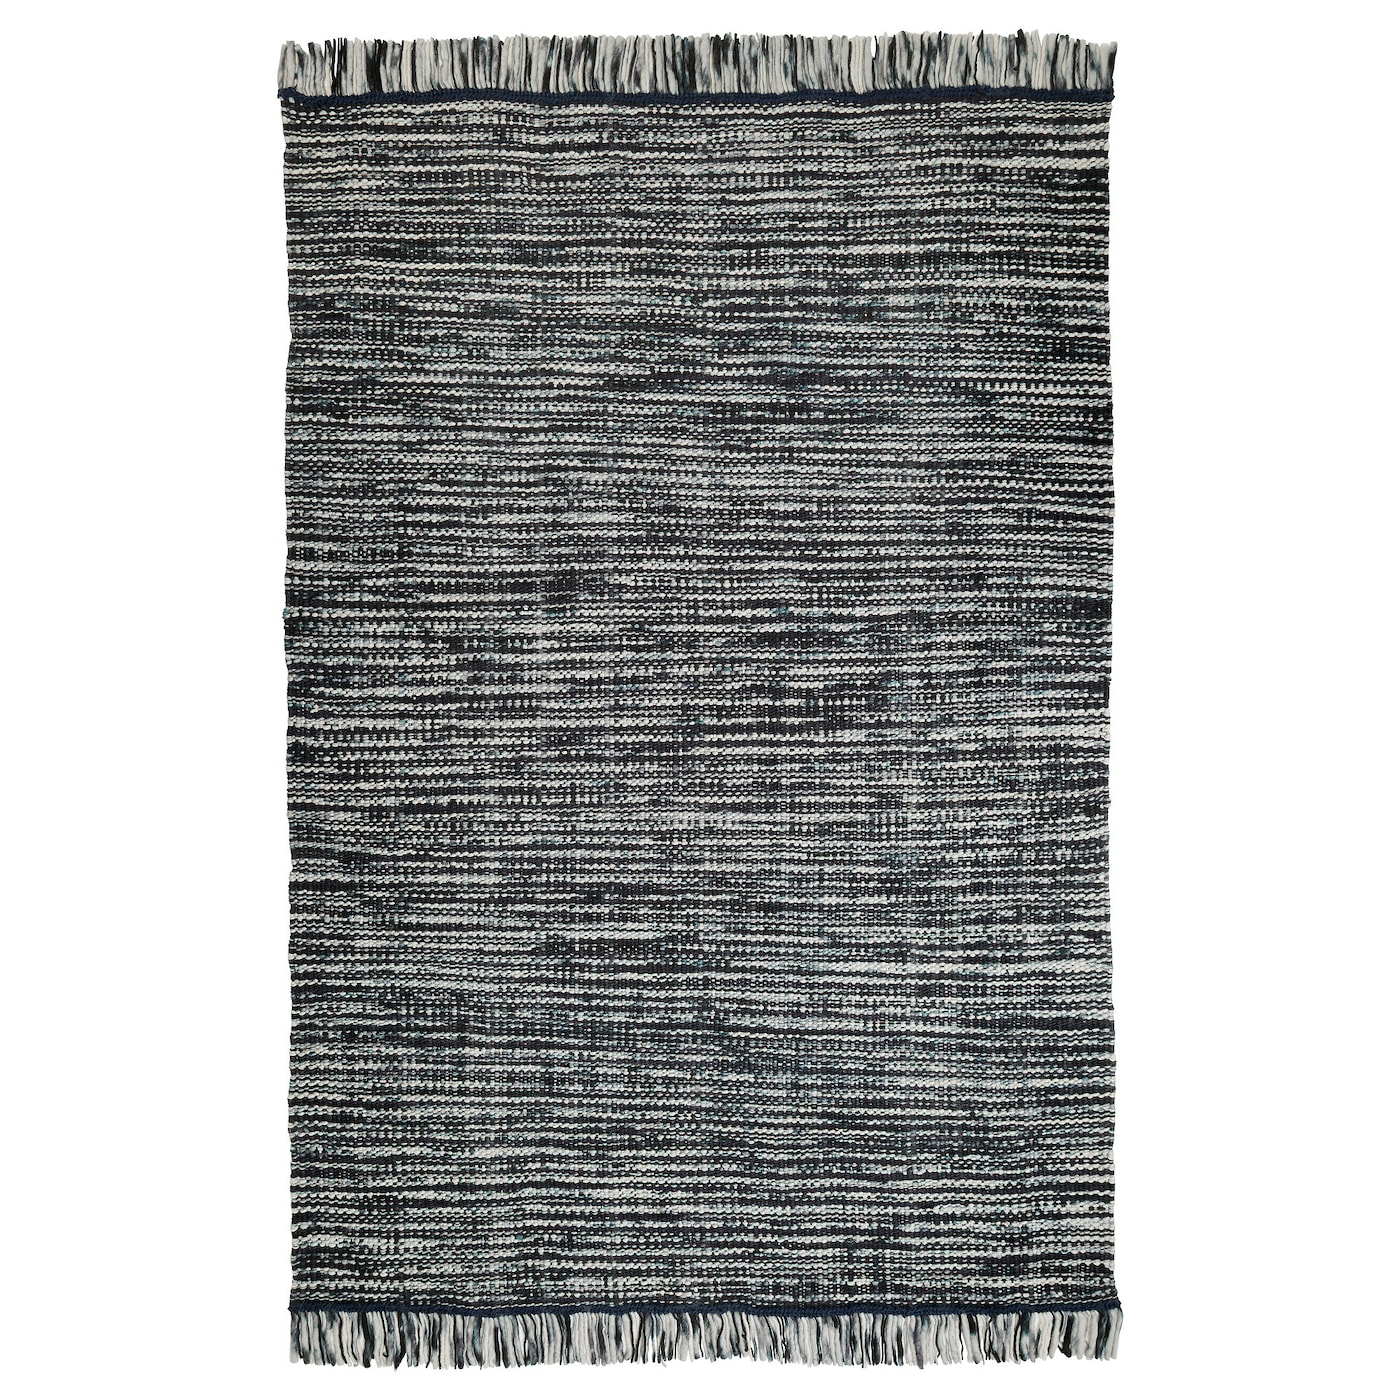 IKEA KÖPENHAMN rug, flatwoven Handwoven by skilled craftspeople, each one is unique.